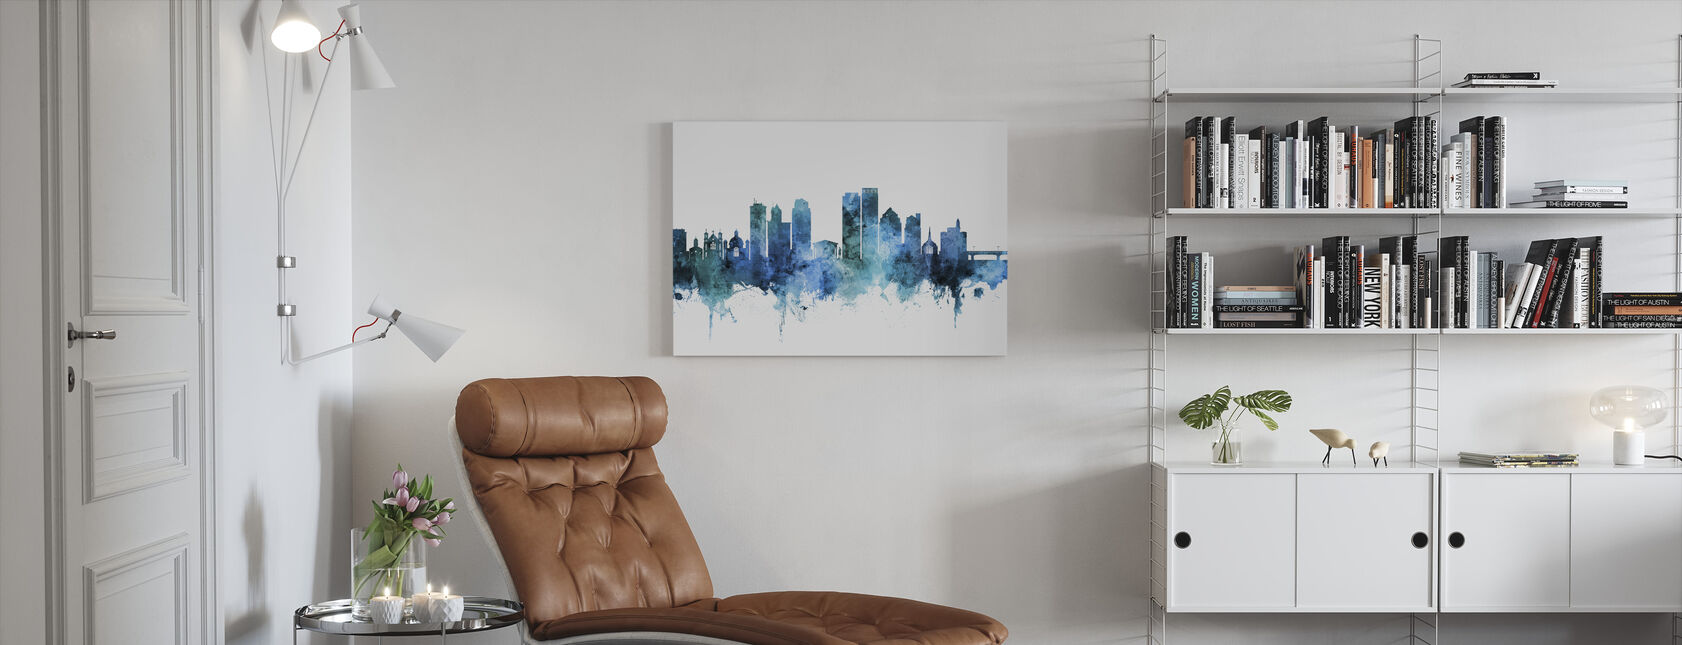 Dayton Ohio Skyline - Canvas print - Living Room